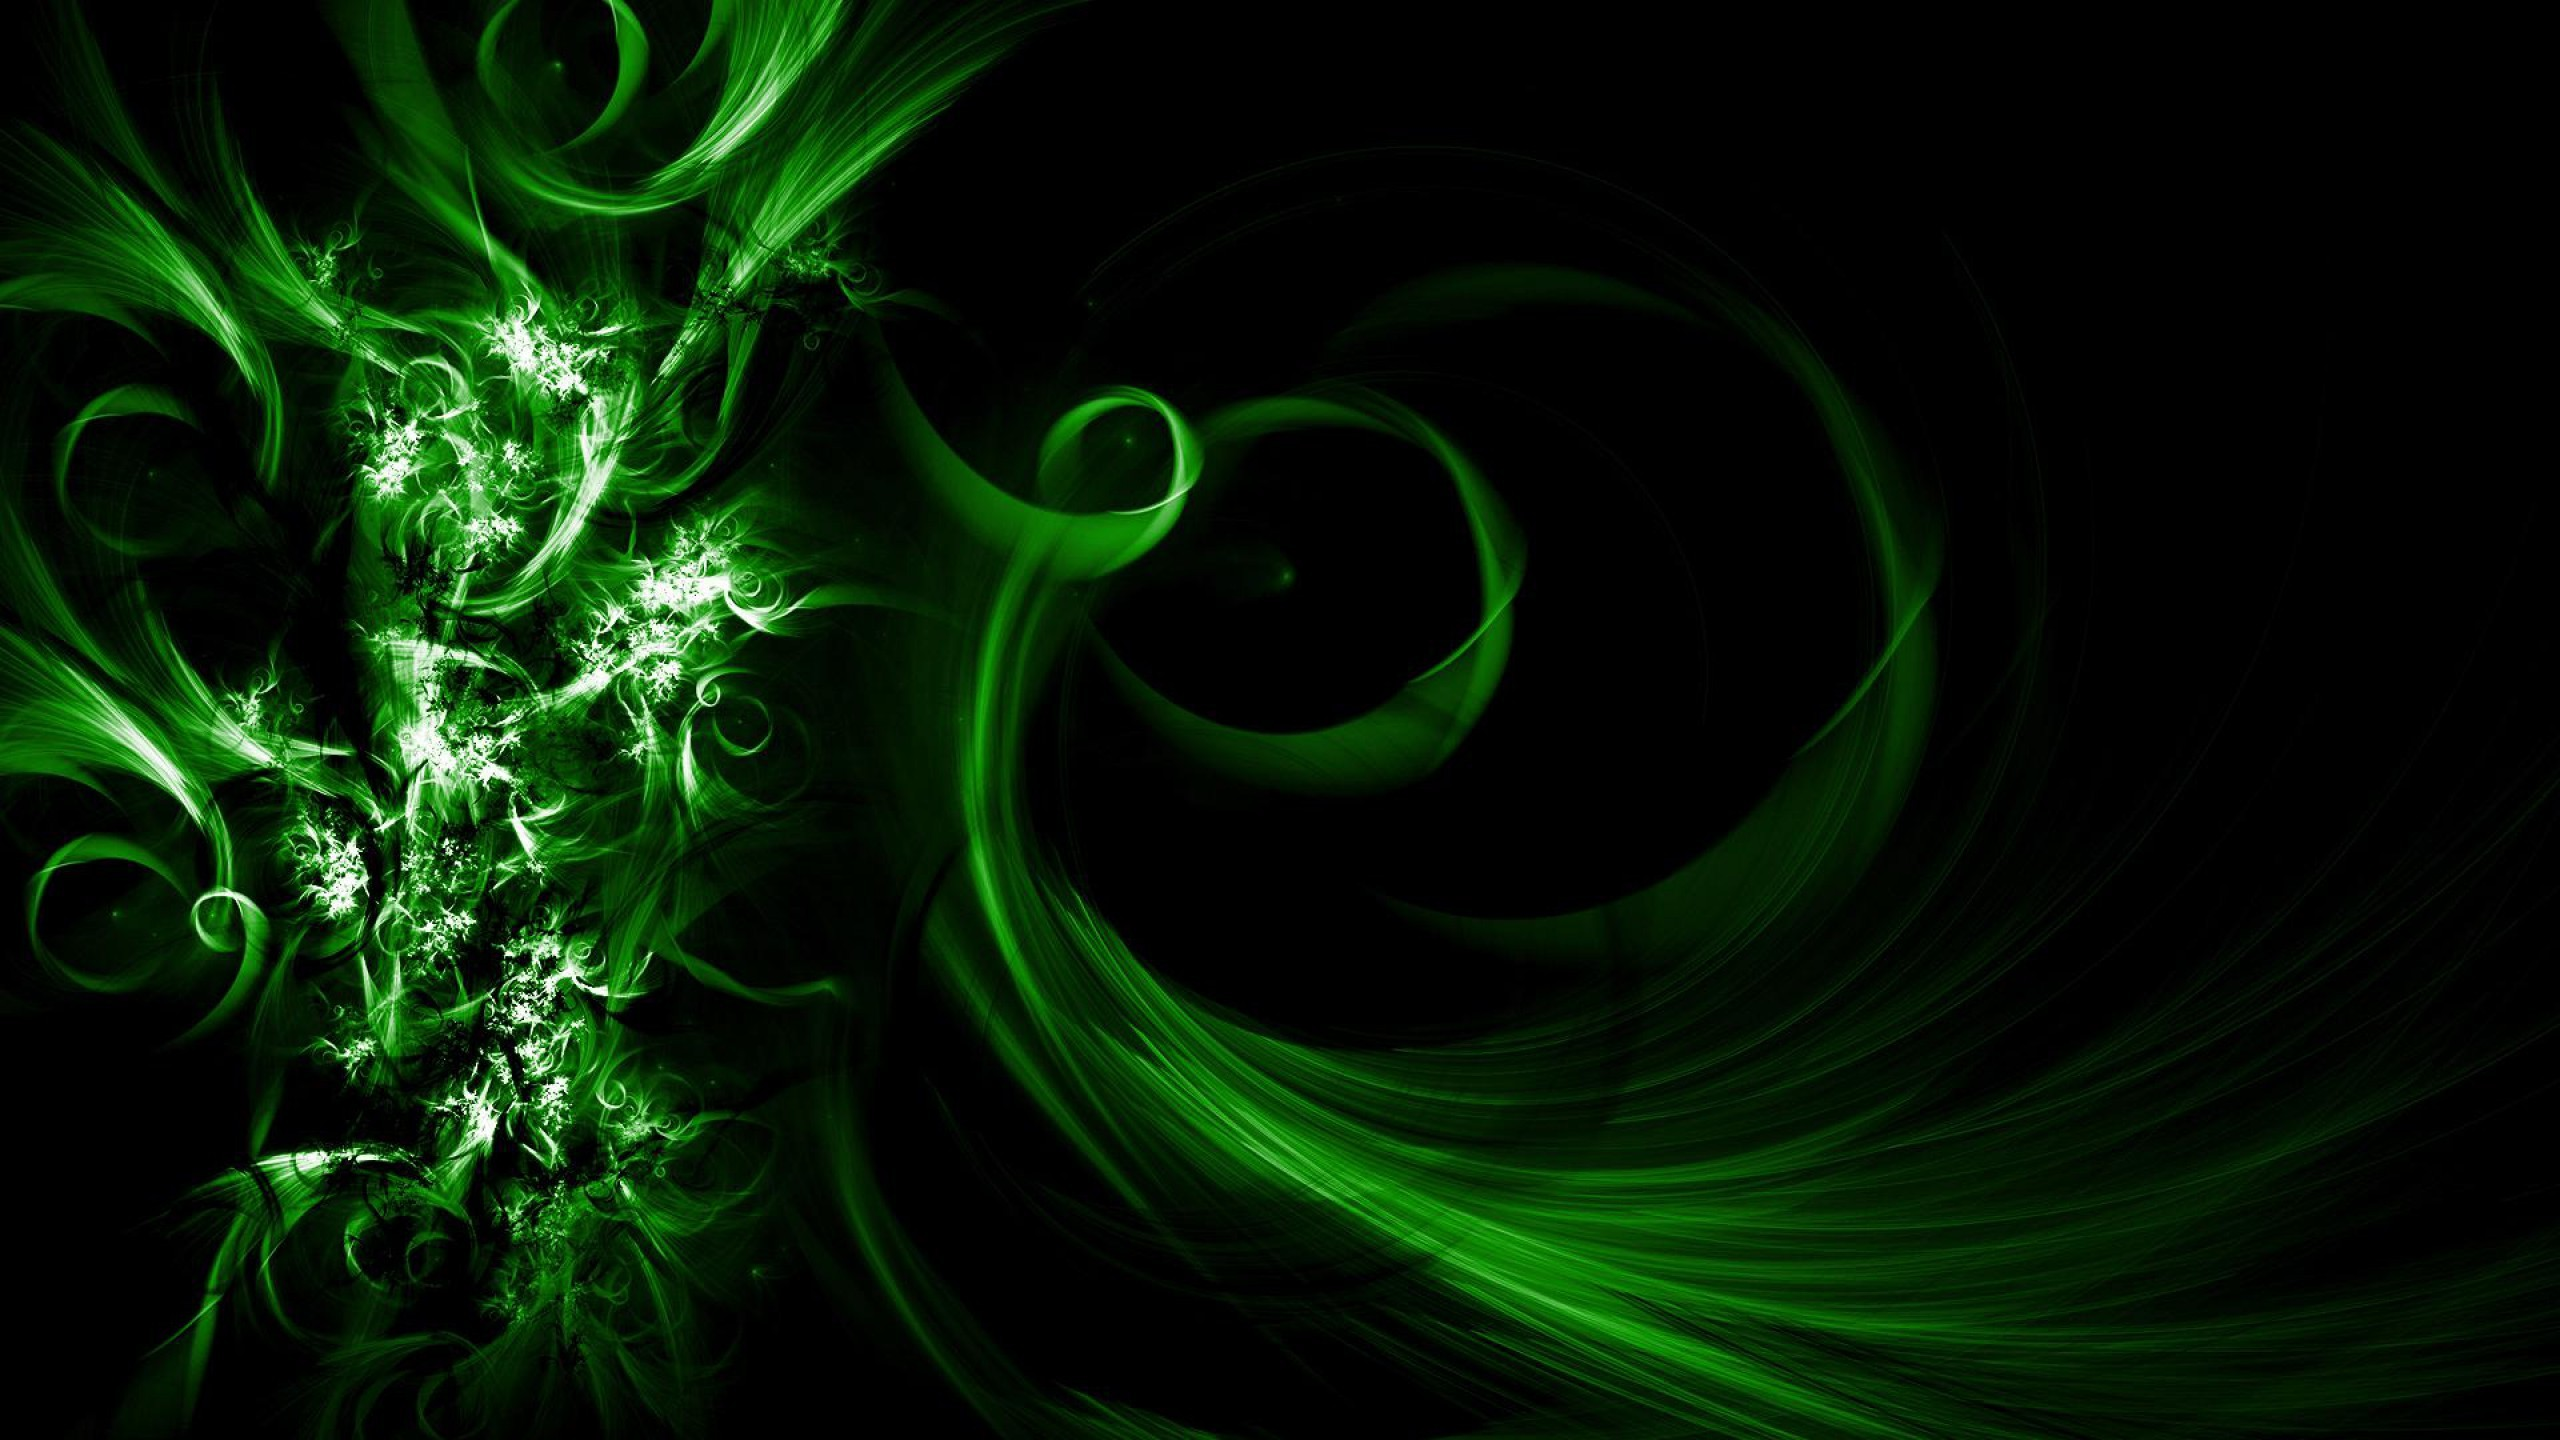 2560x1440 Cool Abstract Wallpaper with an Image of Dark Green Waves - HD Wallpapers  for Free